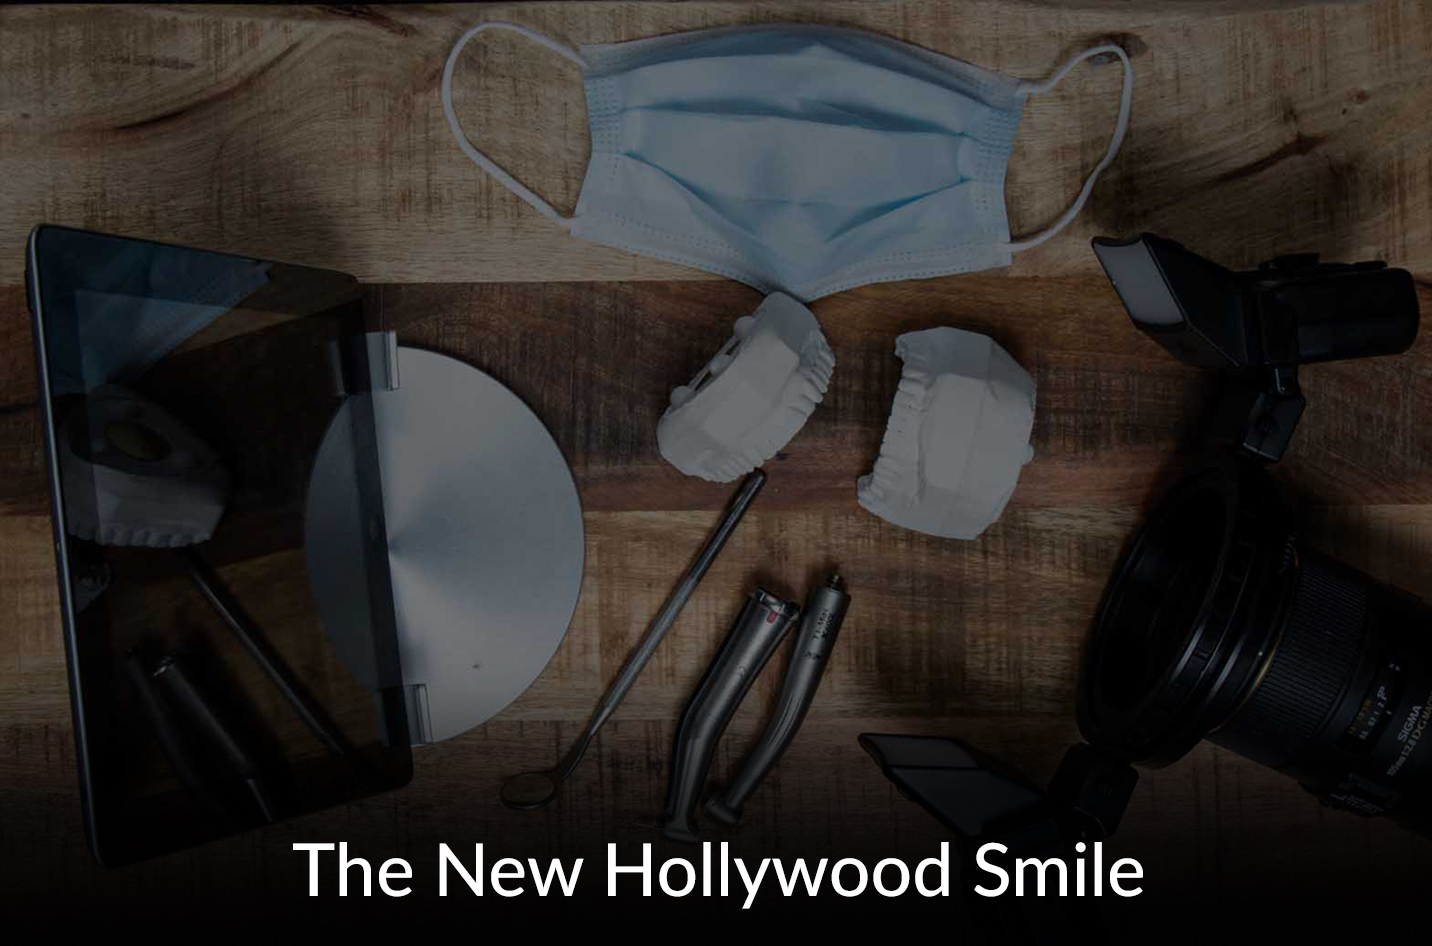 The New Hollywood Smile